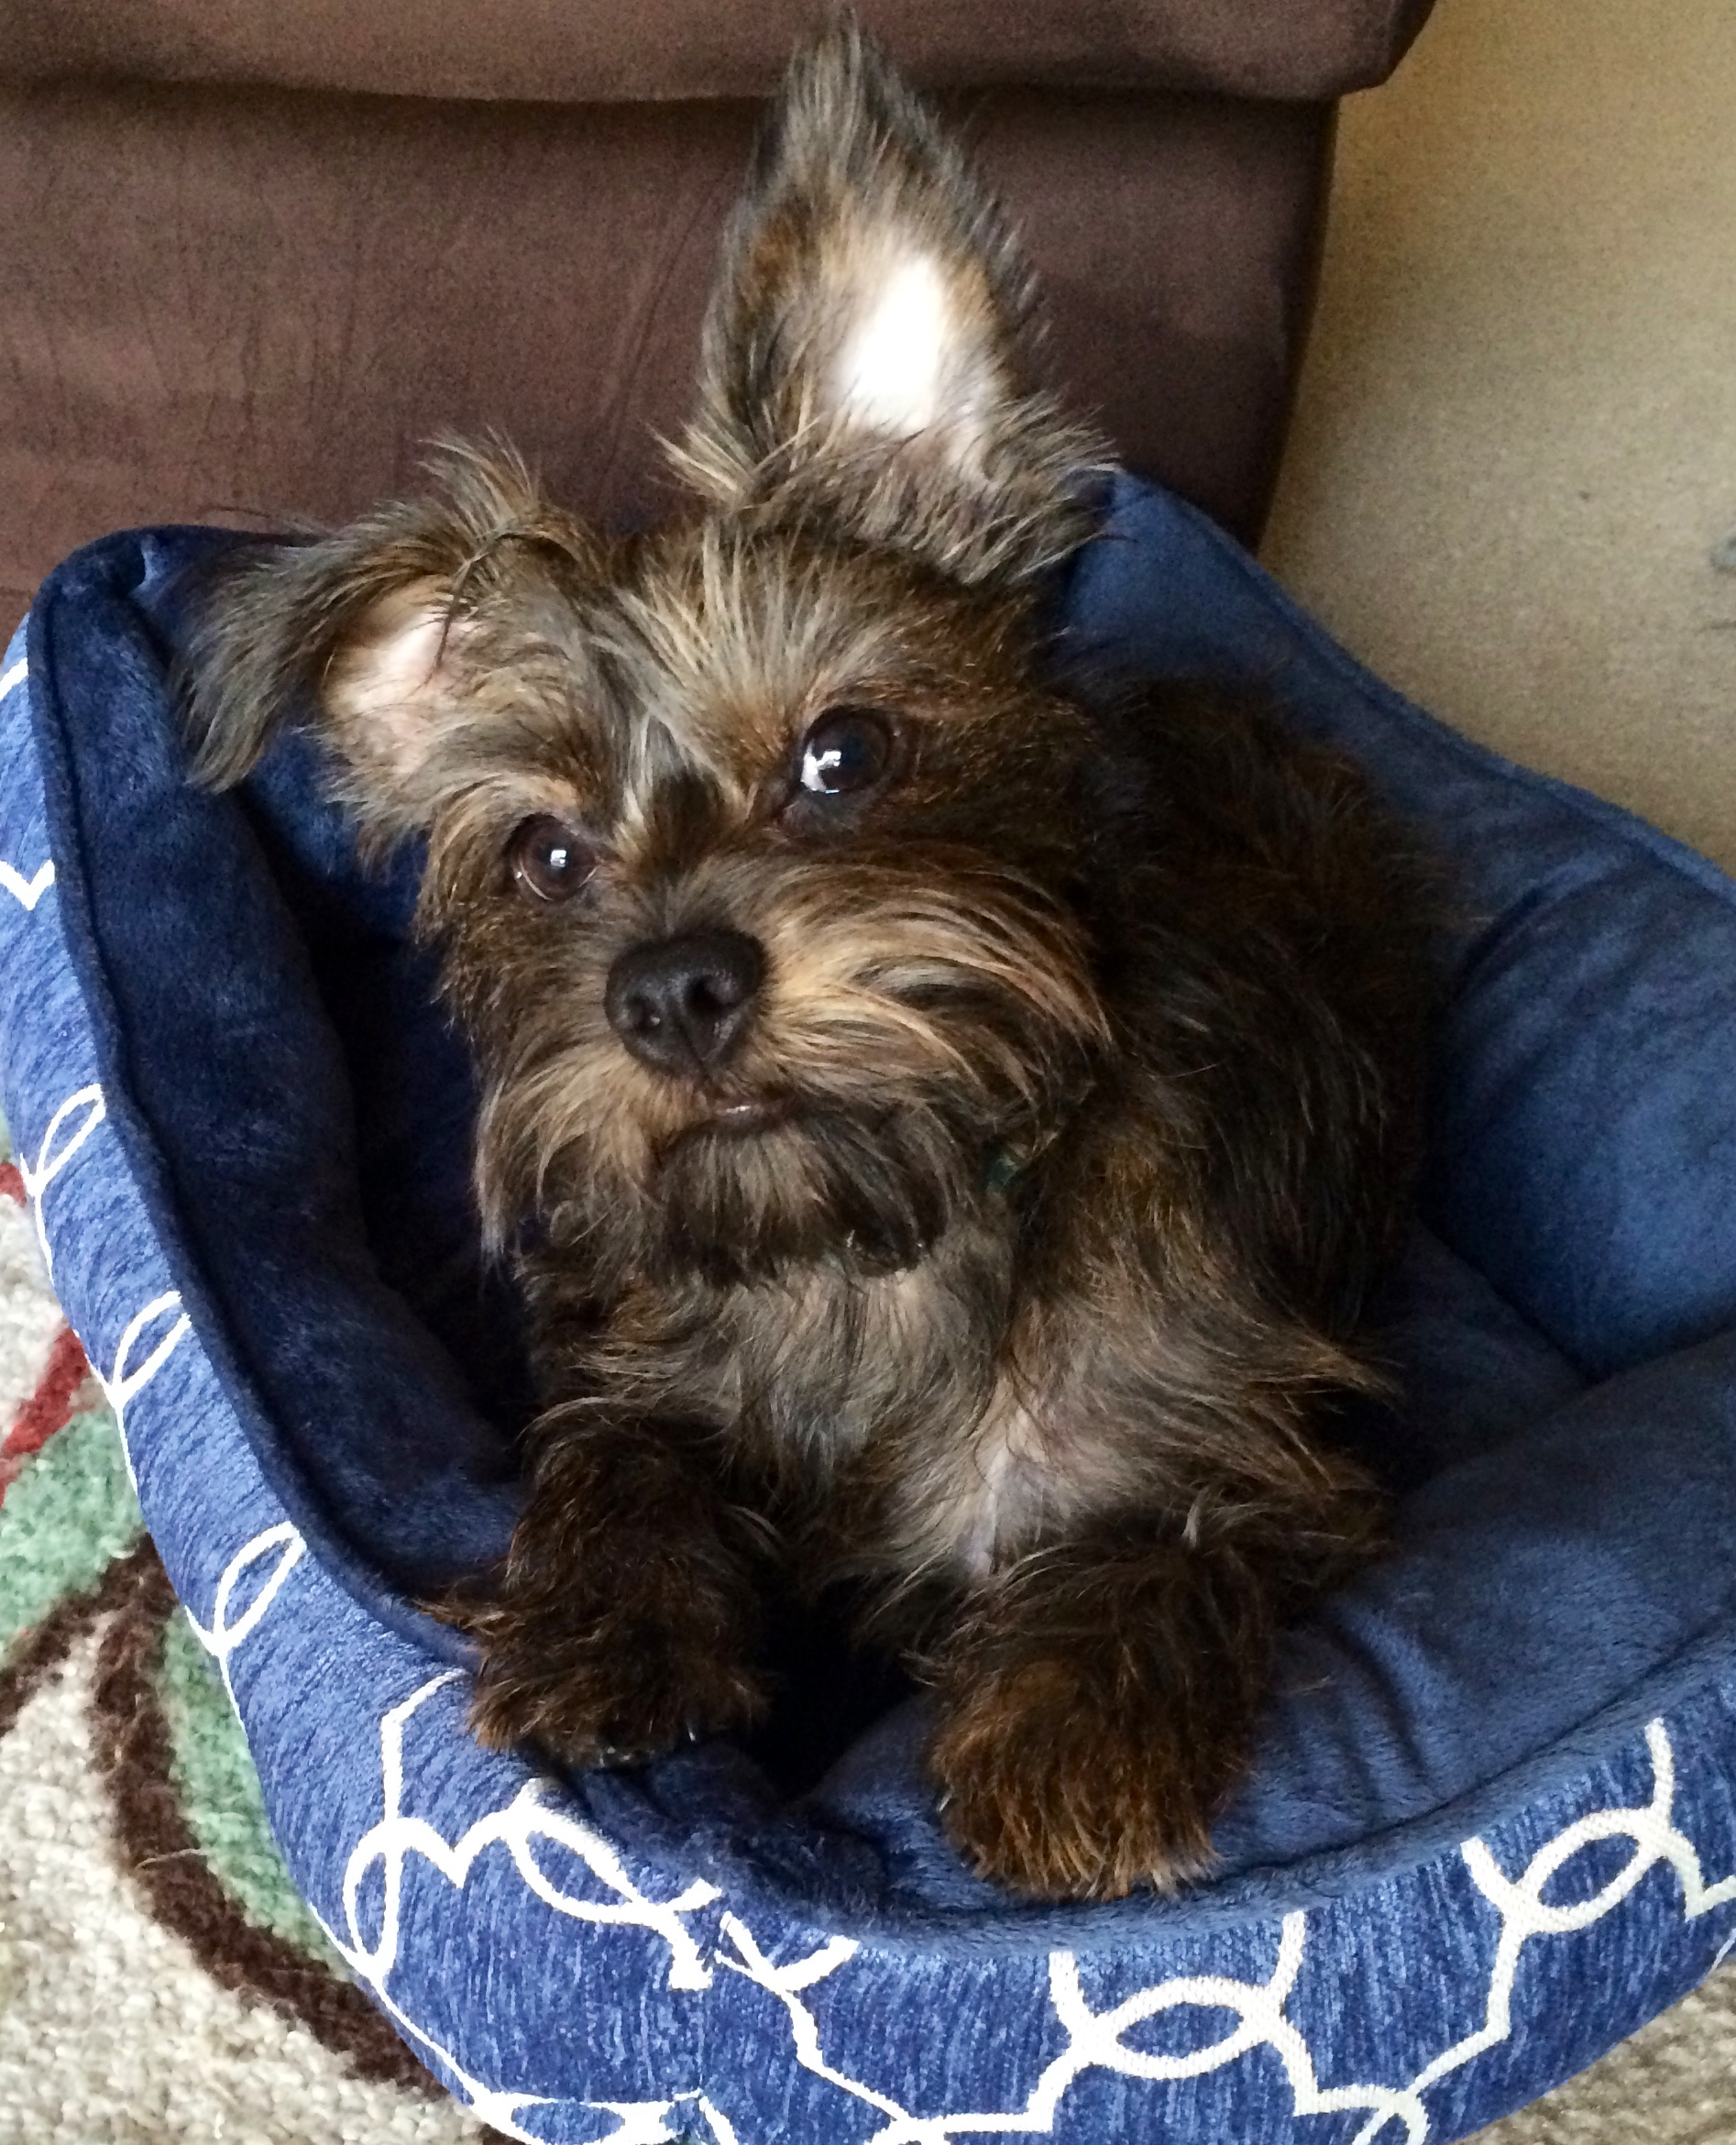 Cassie's sweet pup, Willow (told you she's the cutest).